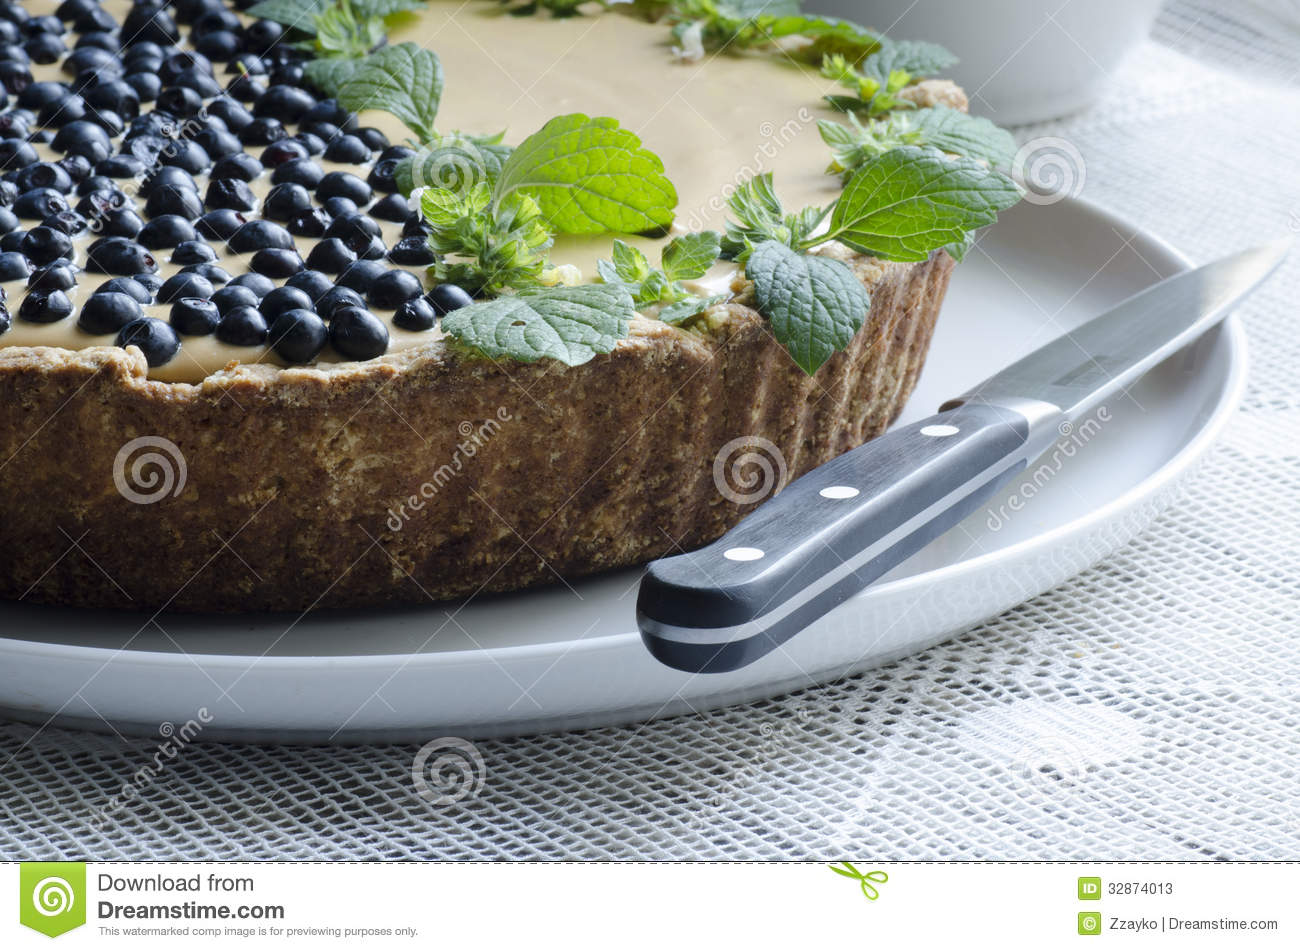 Blueberry pie with mint served with knife